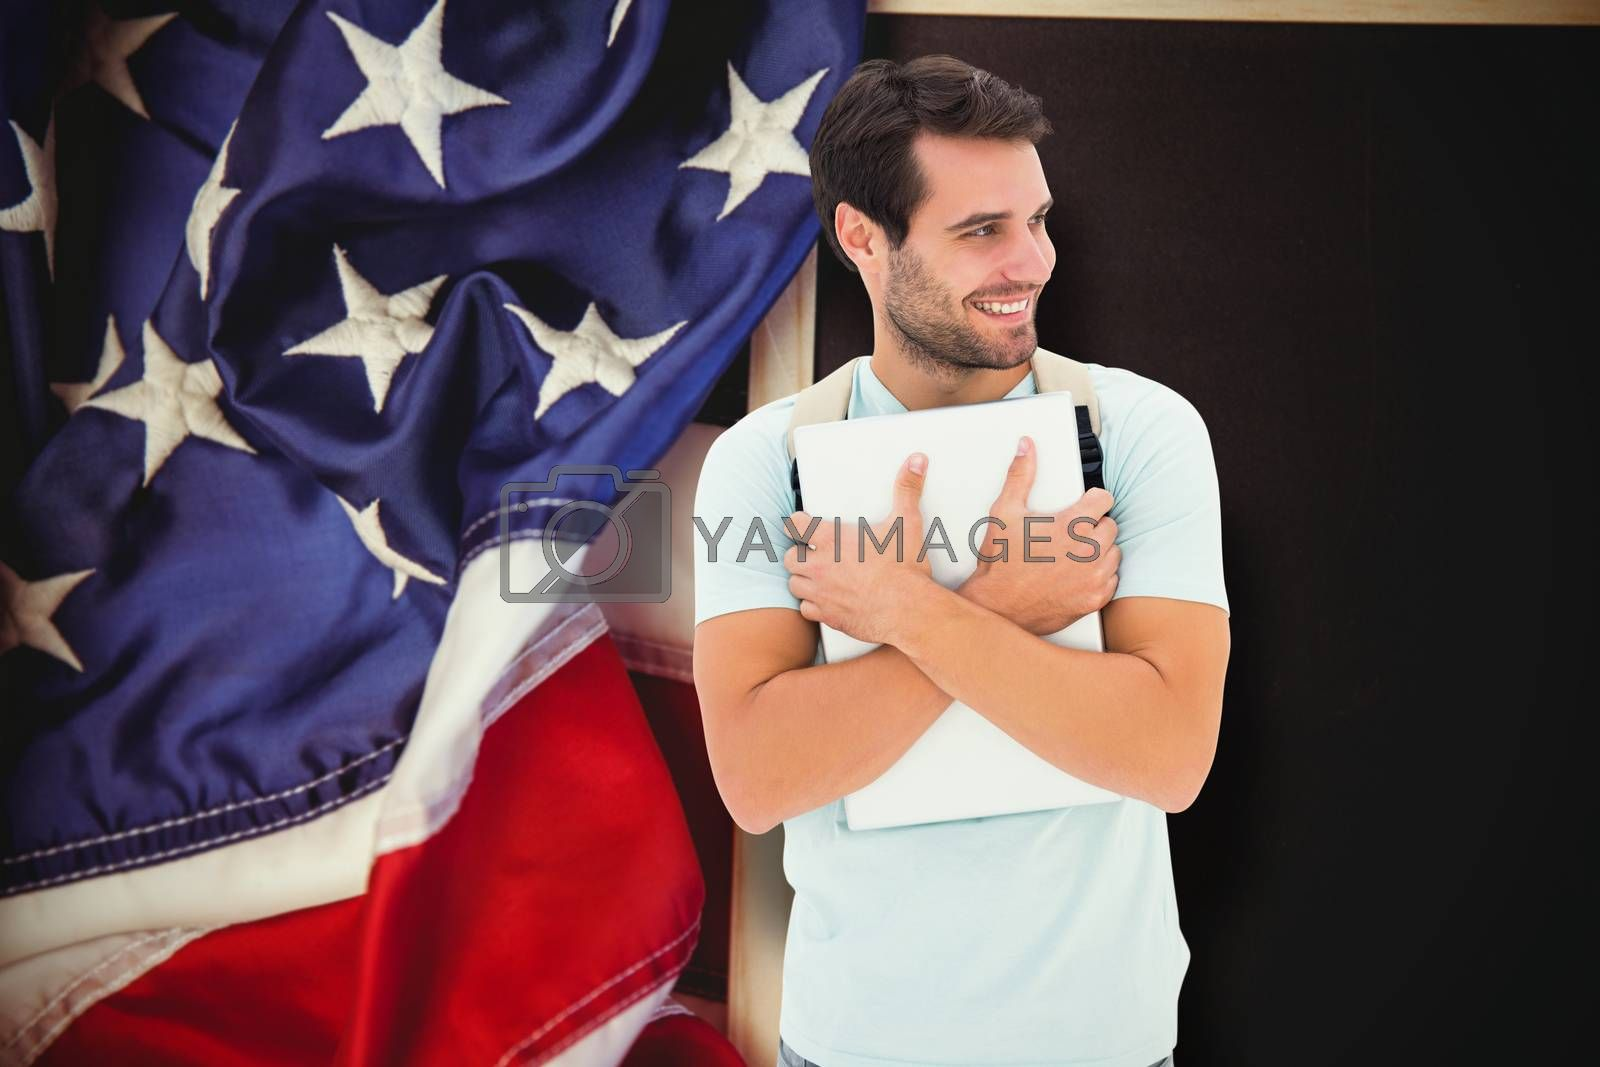 Student holding laptop against american flag on chalkboard